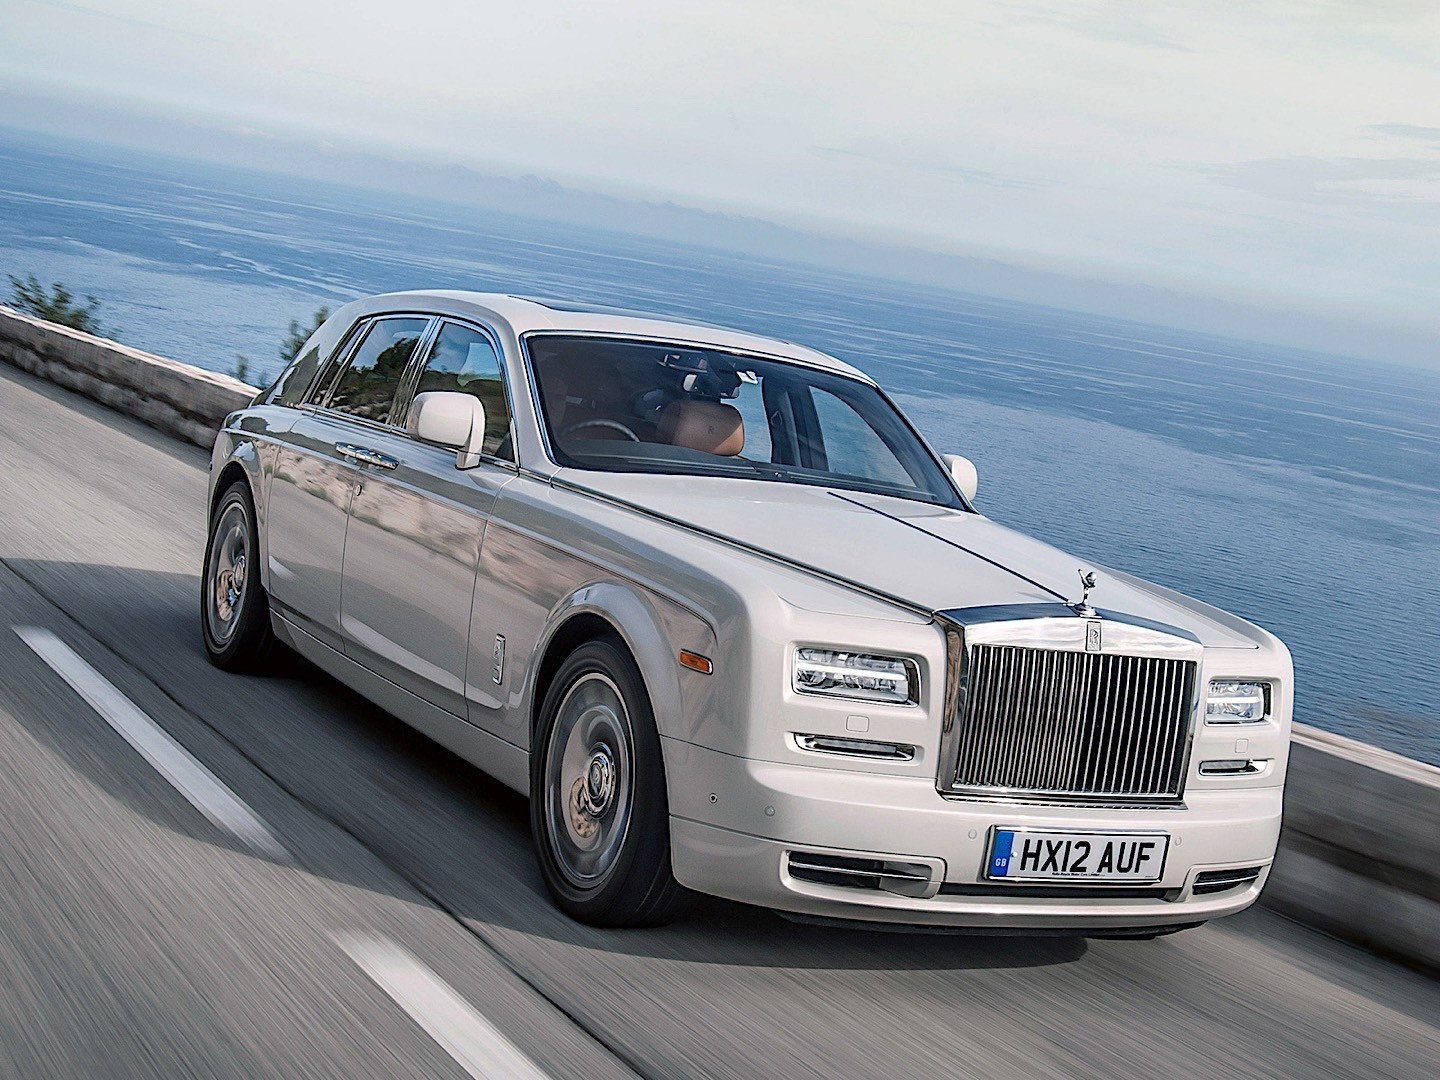 rolls royce phantom specs photos 2012 2013 2014 2015 2016 2017 autoevolution. Black Bedroom Furniture Sets. Home Design Ideas